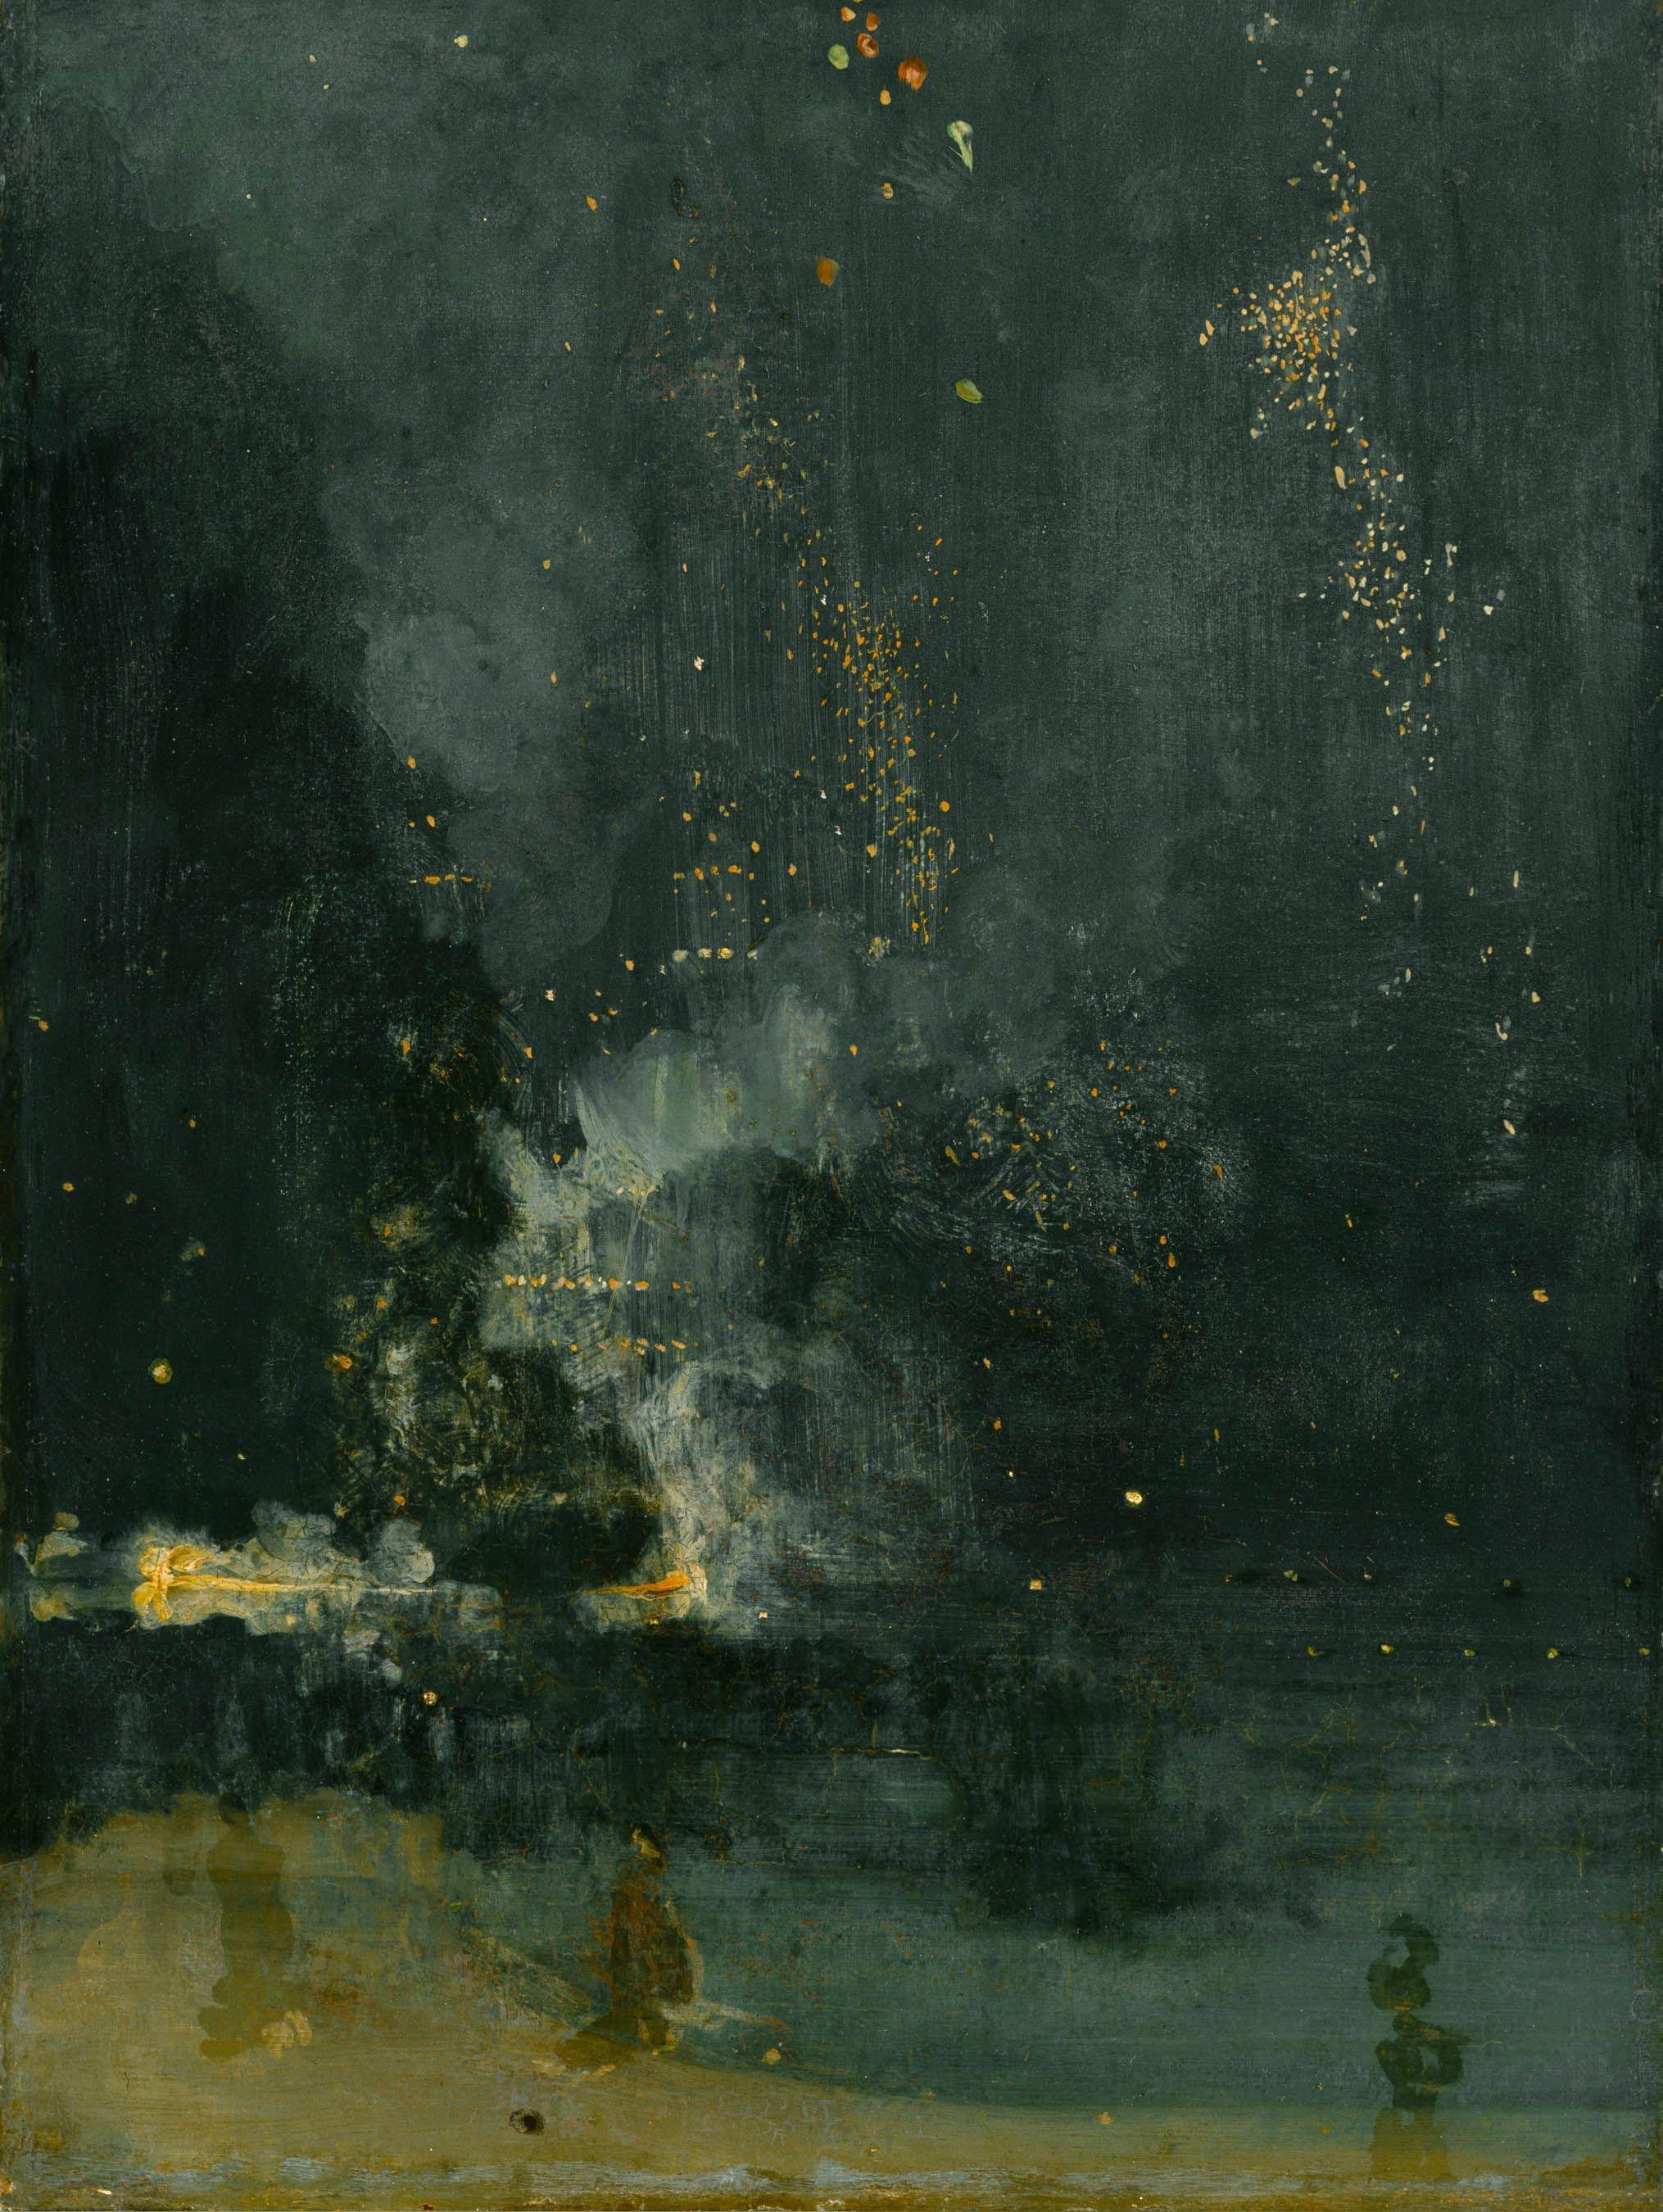 whistler-nocturne in black and gold-FINAL